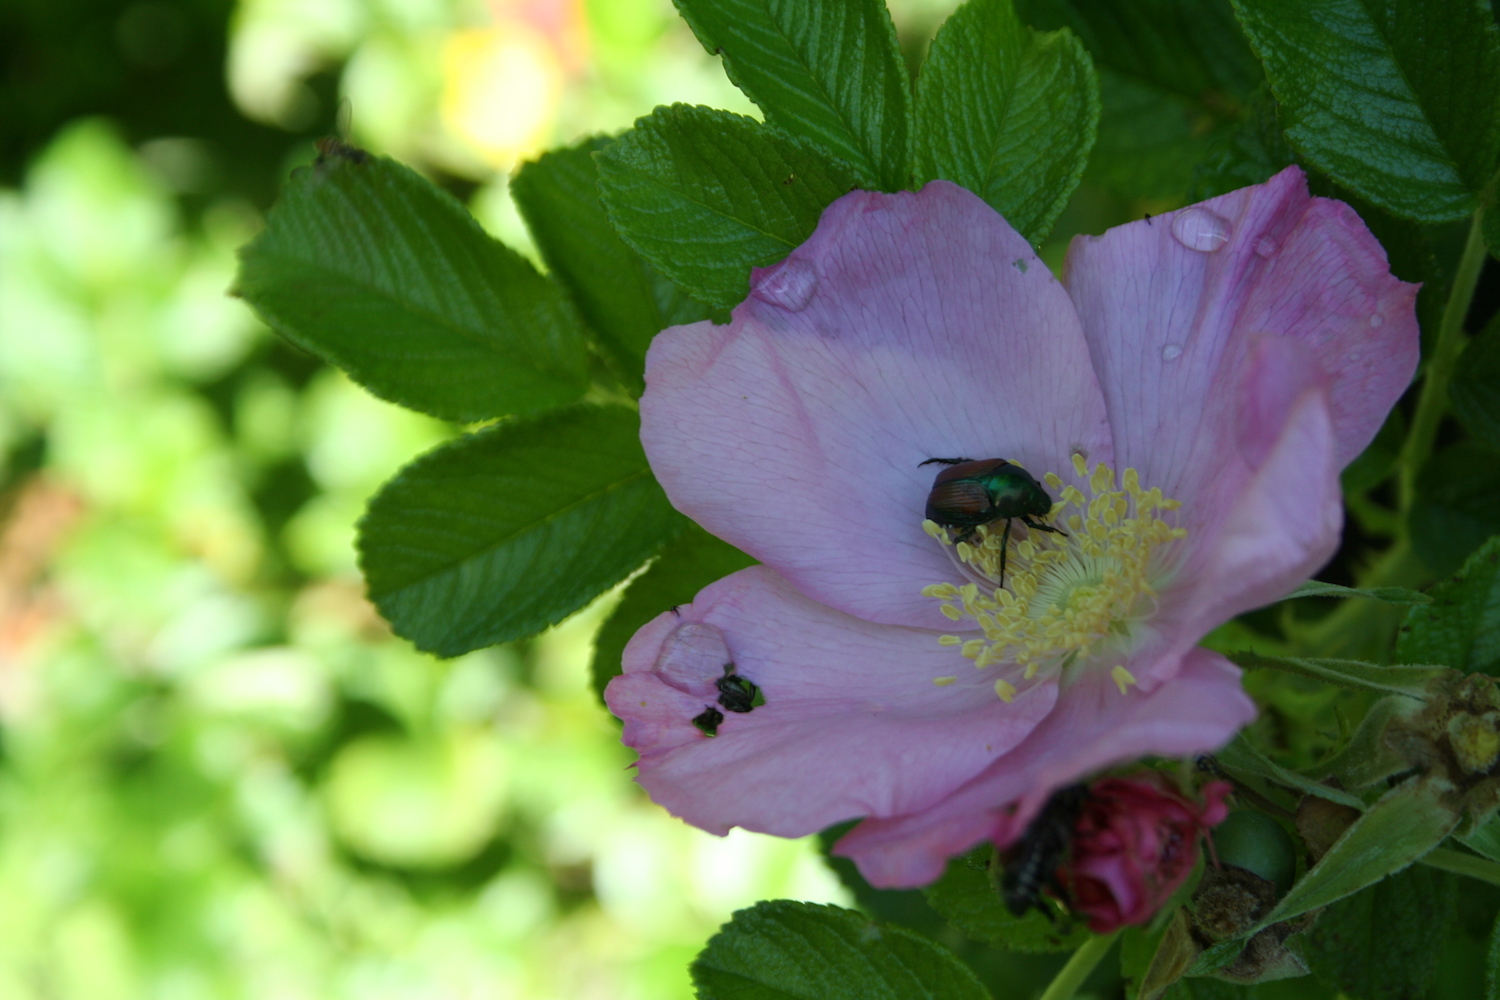 Japanese beetle on healthy rose